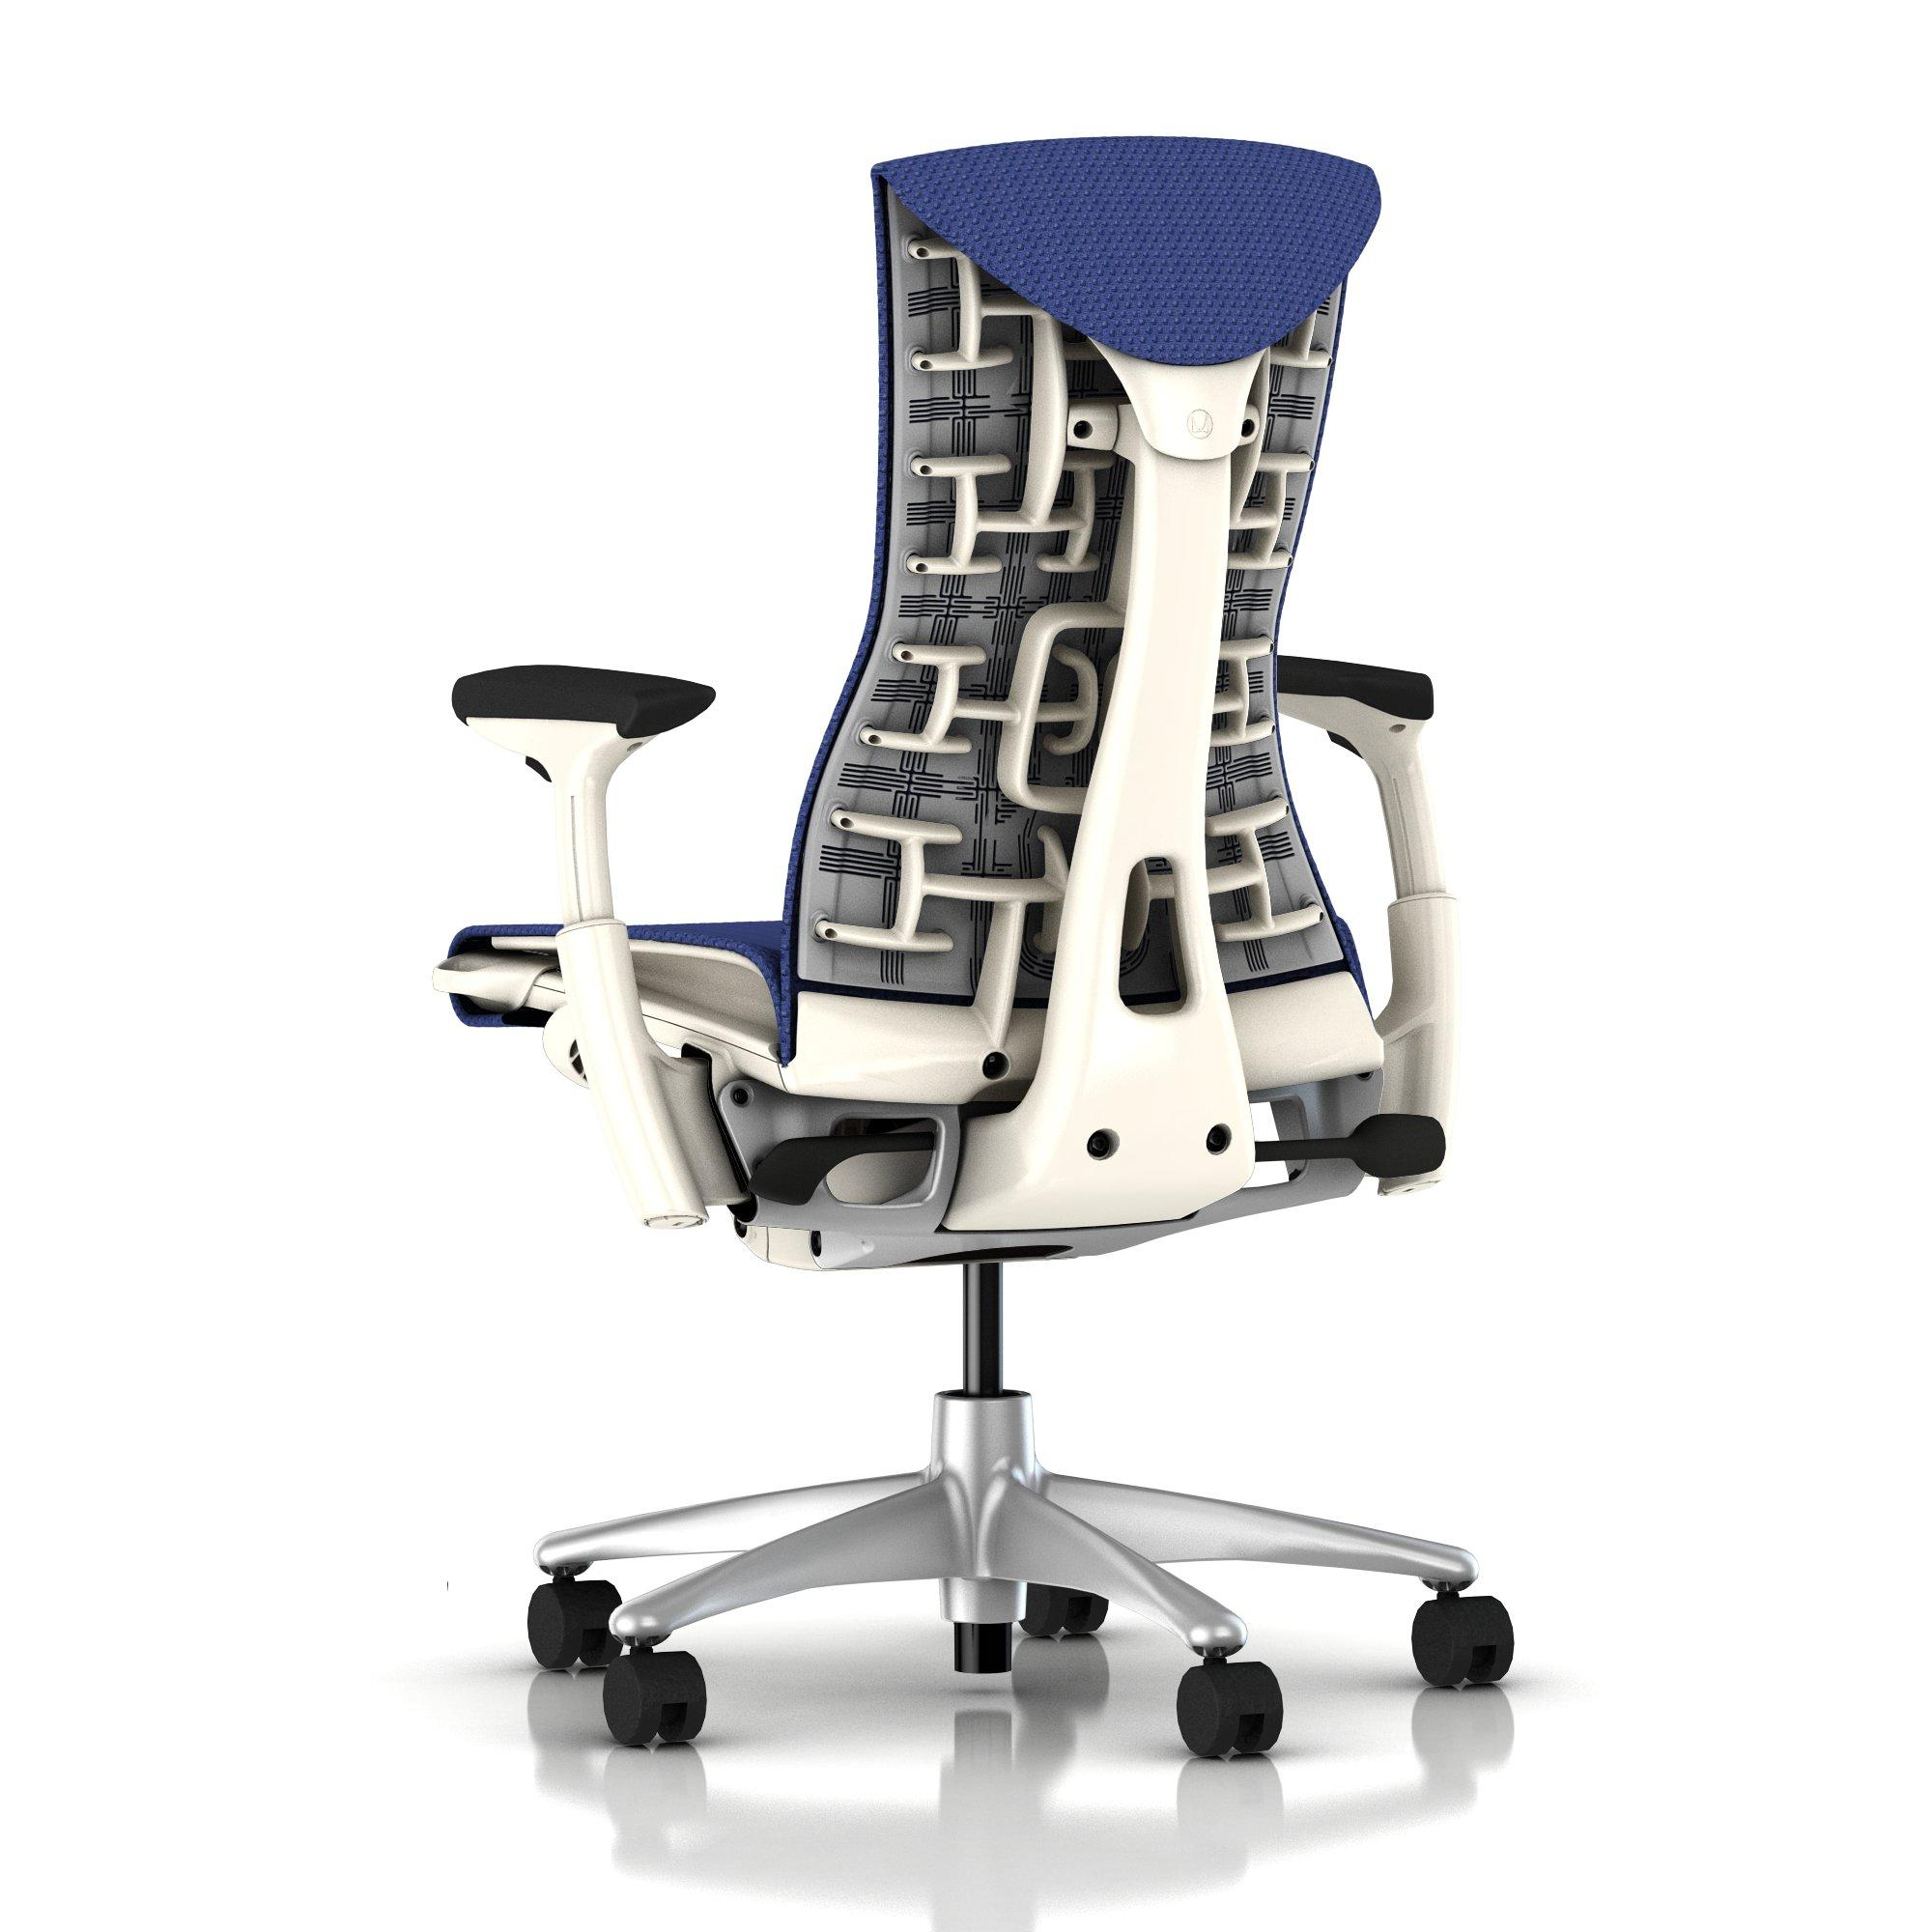 Herman Miller Embody Chair Iris Blue Balance with White Frame and